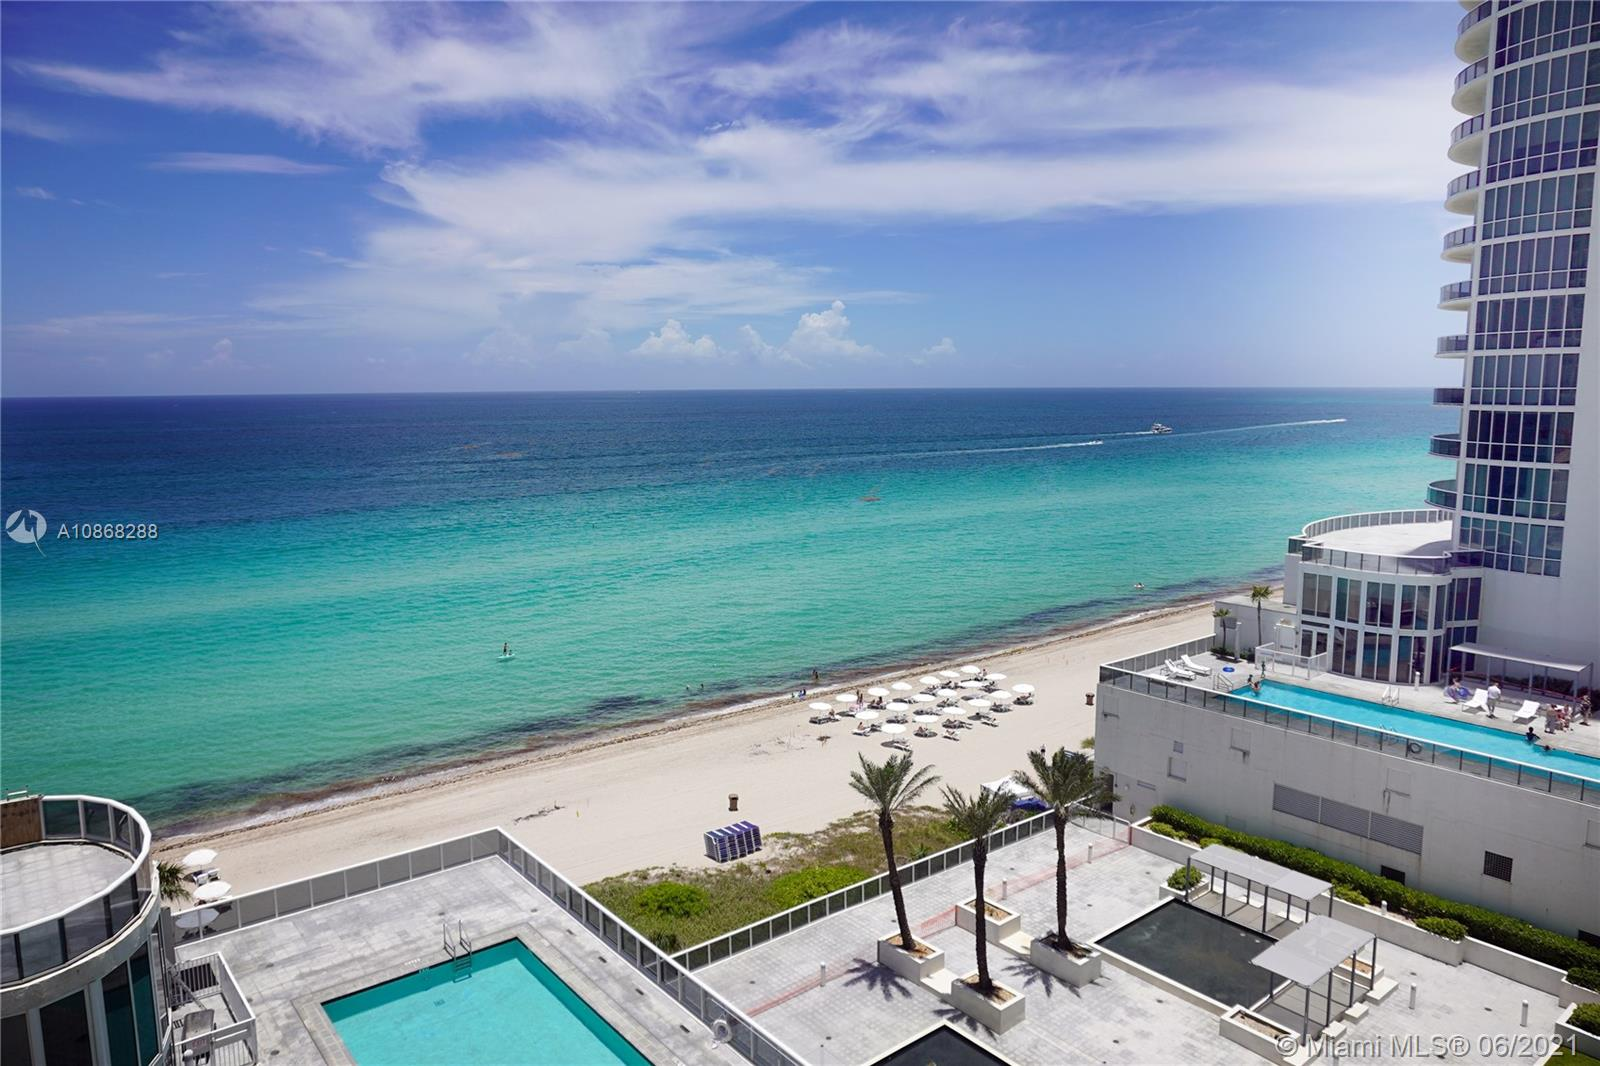 BEAUTIFUL 2/3 CONDO WITH THE OCEANVIEW IN THE LUXURY BUILDING WITH TOP AMENITIES. PRICED TO SELL!!!